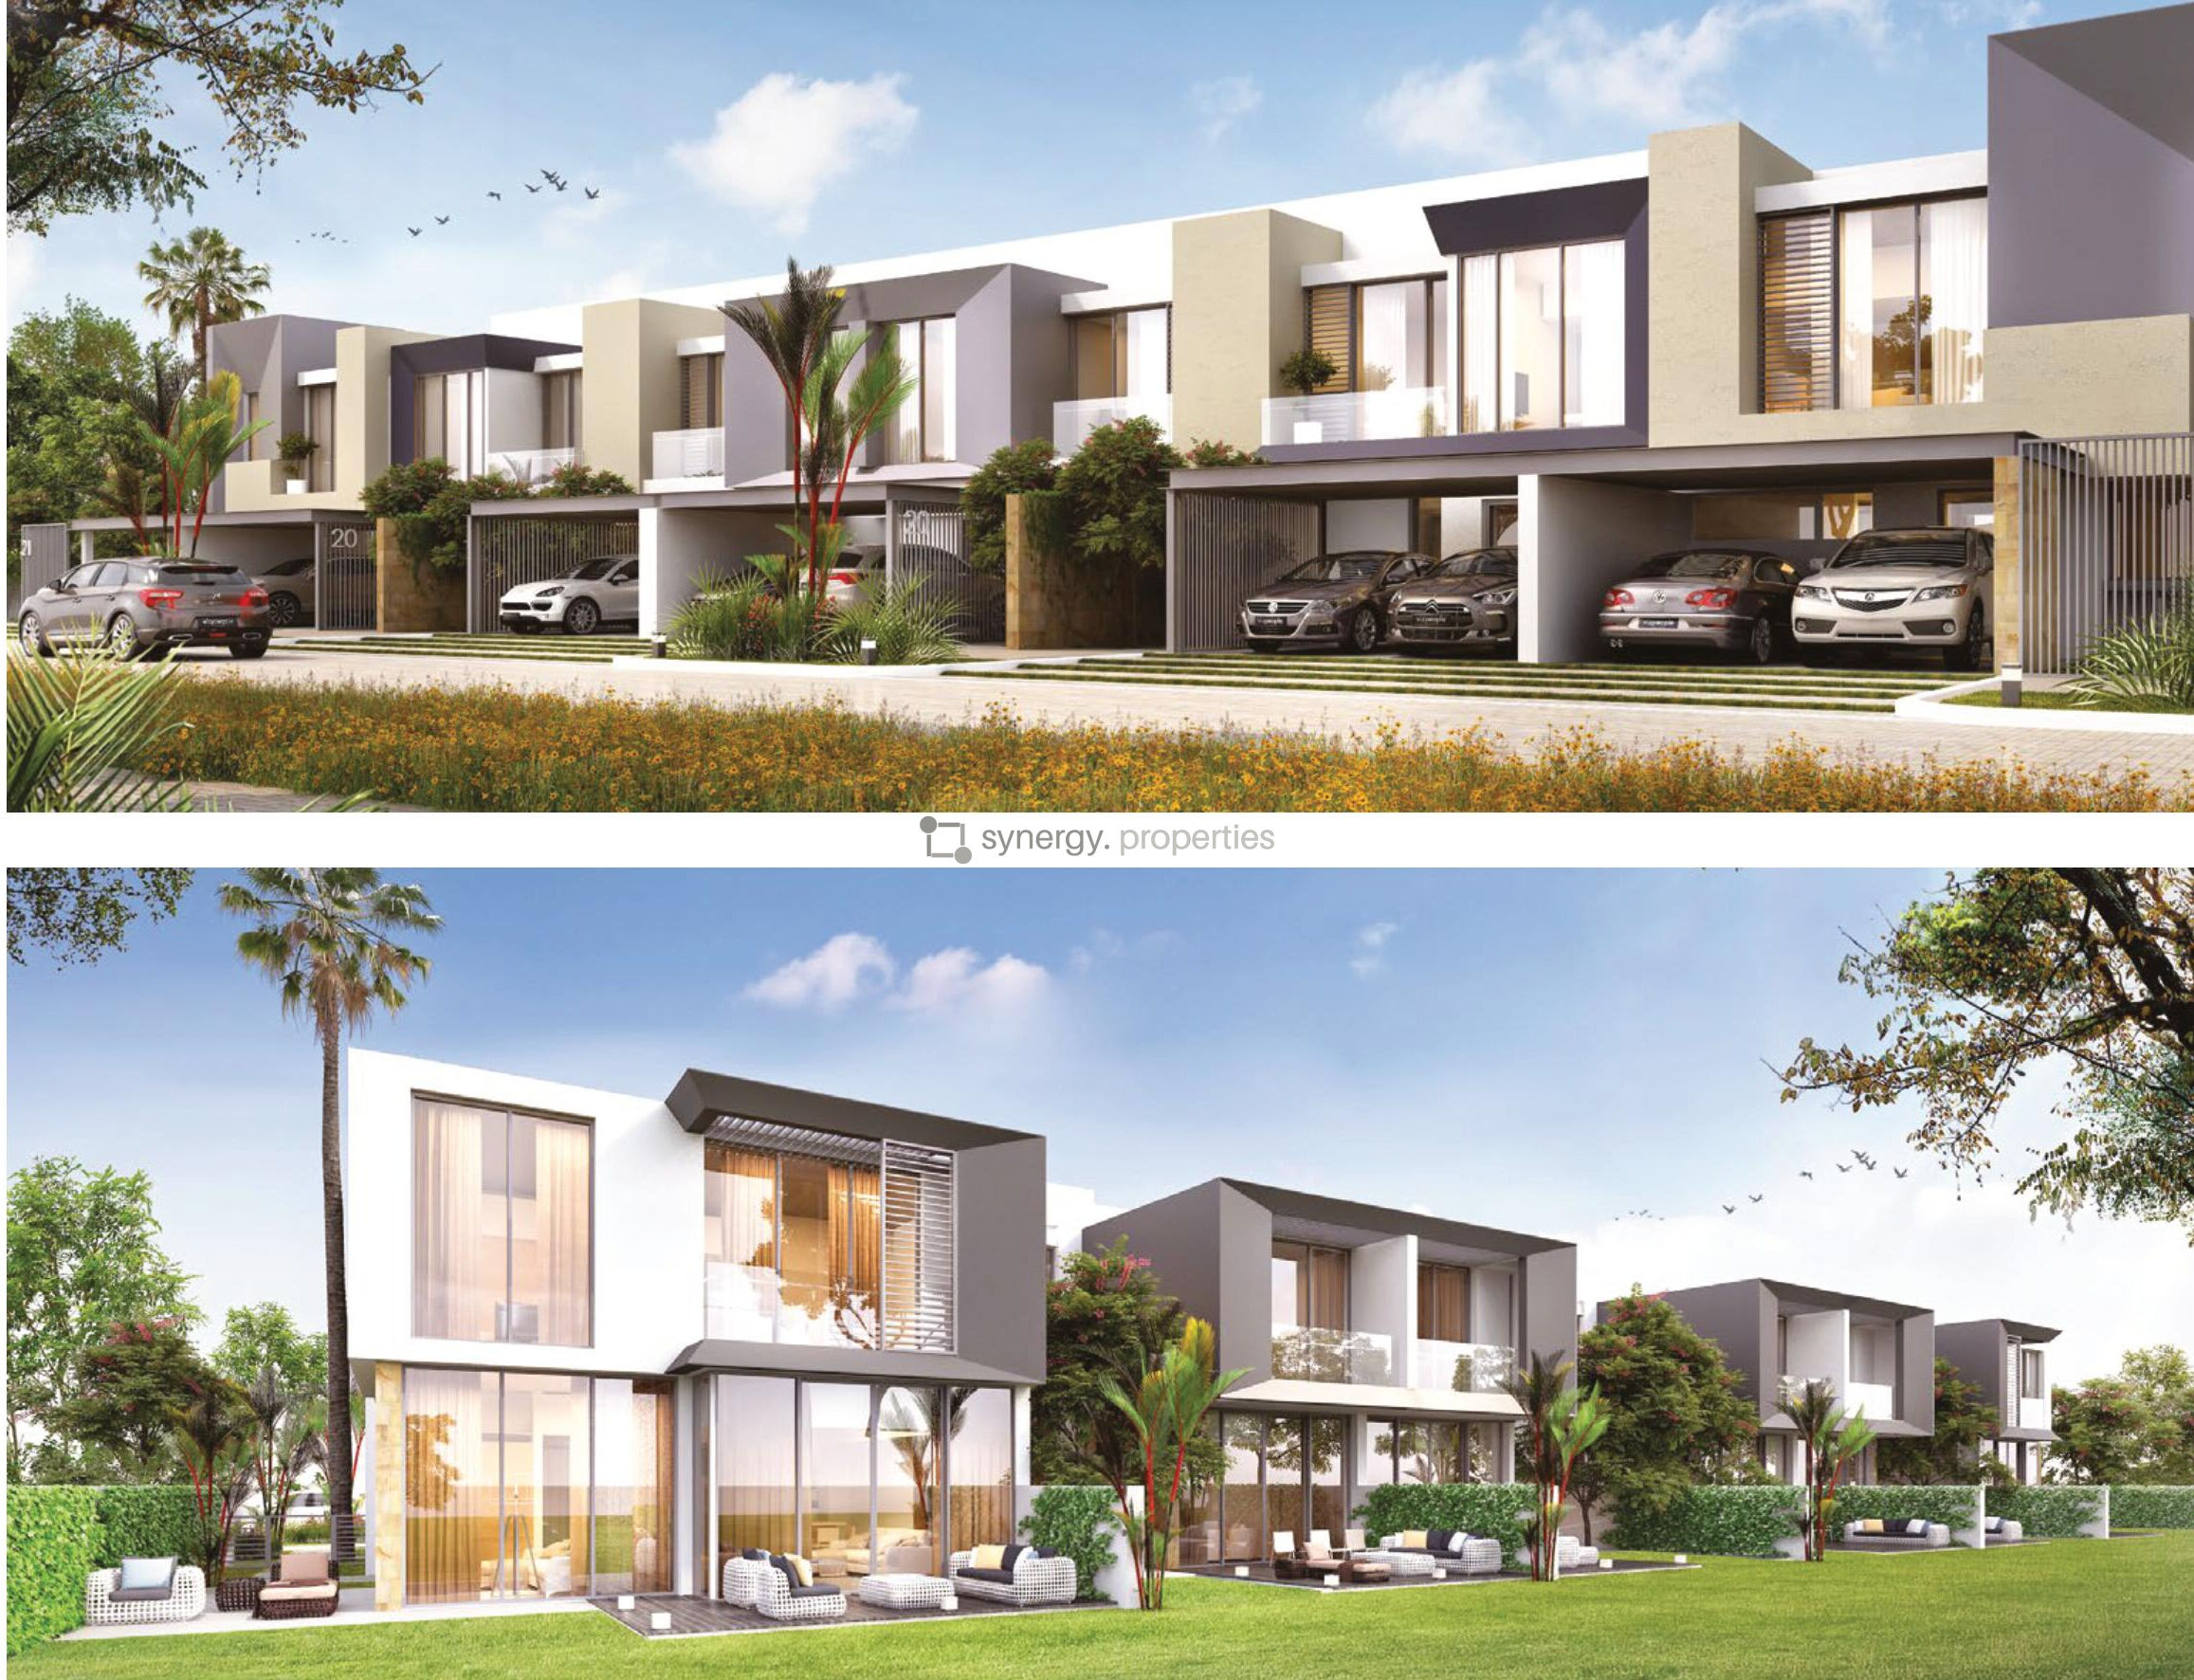 Properties for sale in Gardenia Townhomes, wasl gate